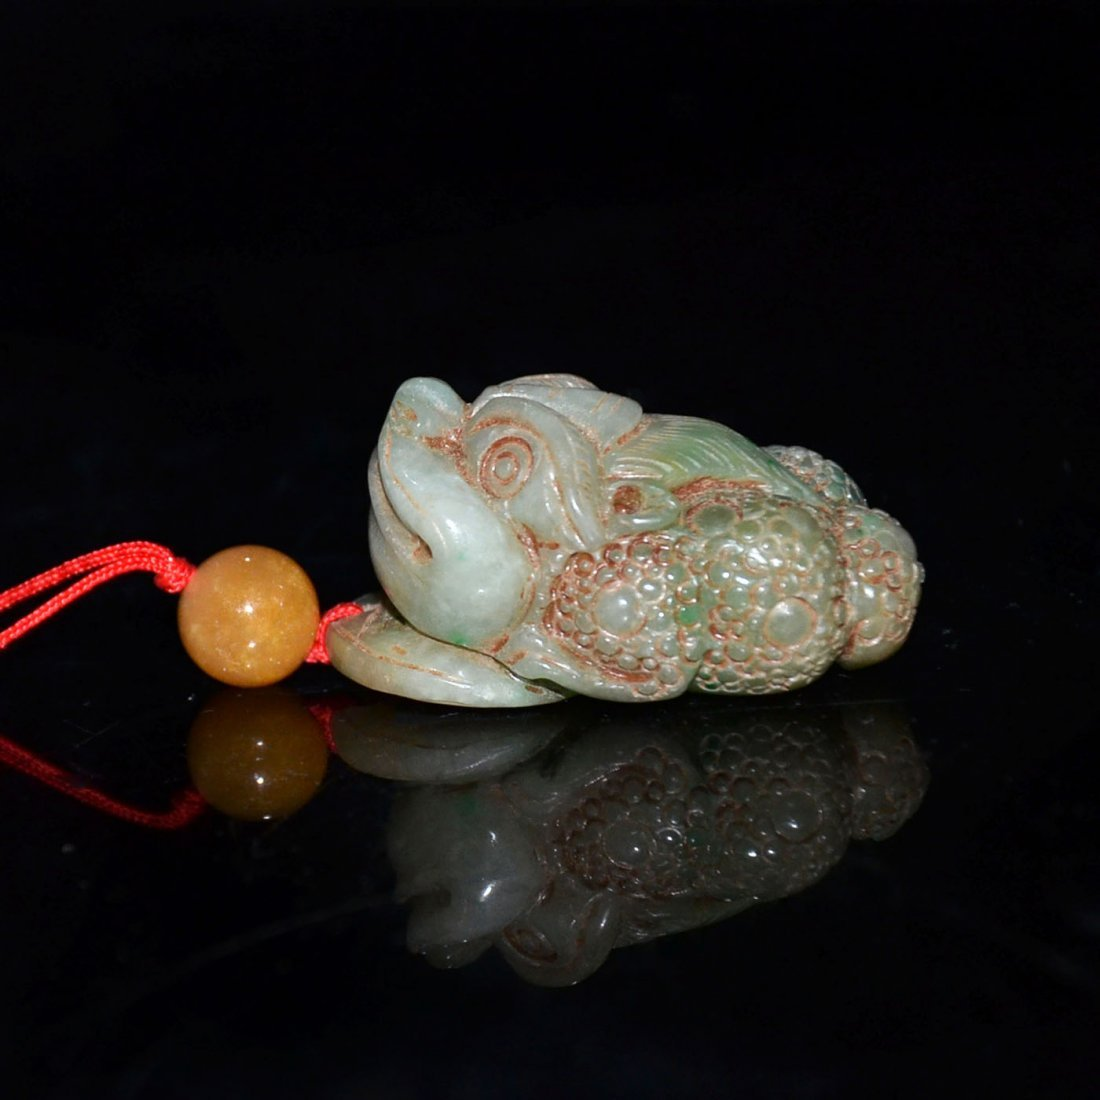 Ming, A Jadeite Carving of Toad with Dragon Head Pebble - 4